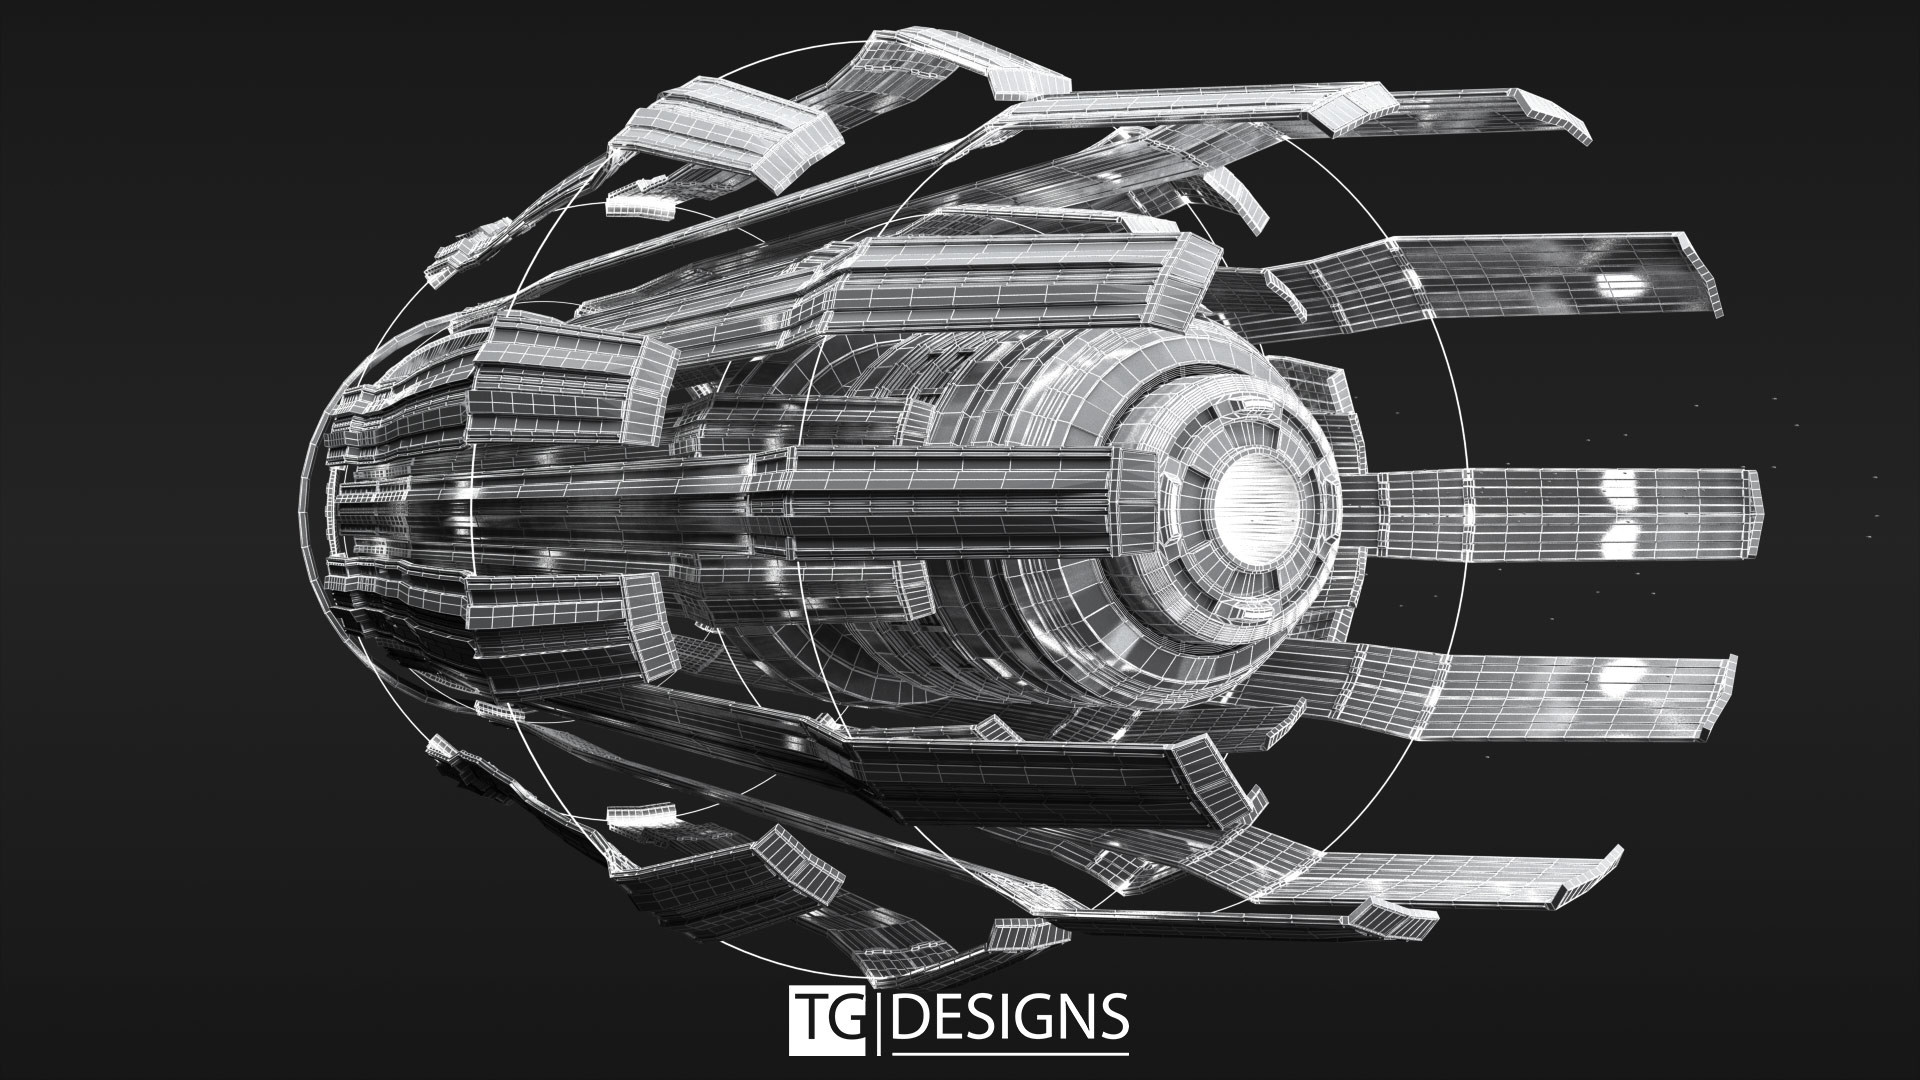 Tyler goll tribescapitalship render front wireframe edit